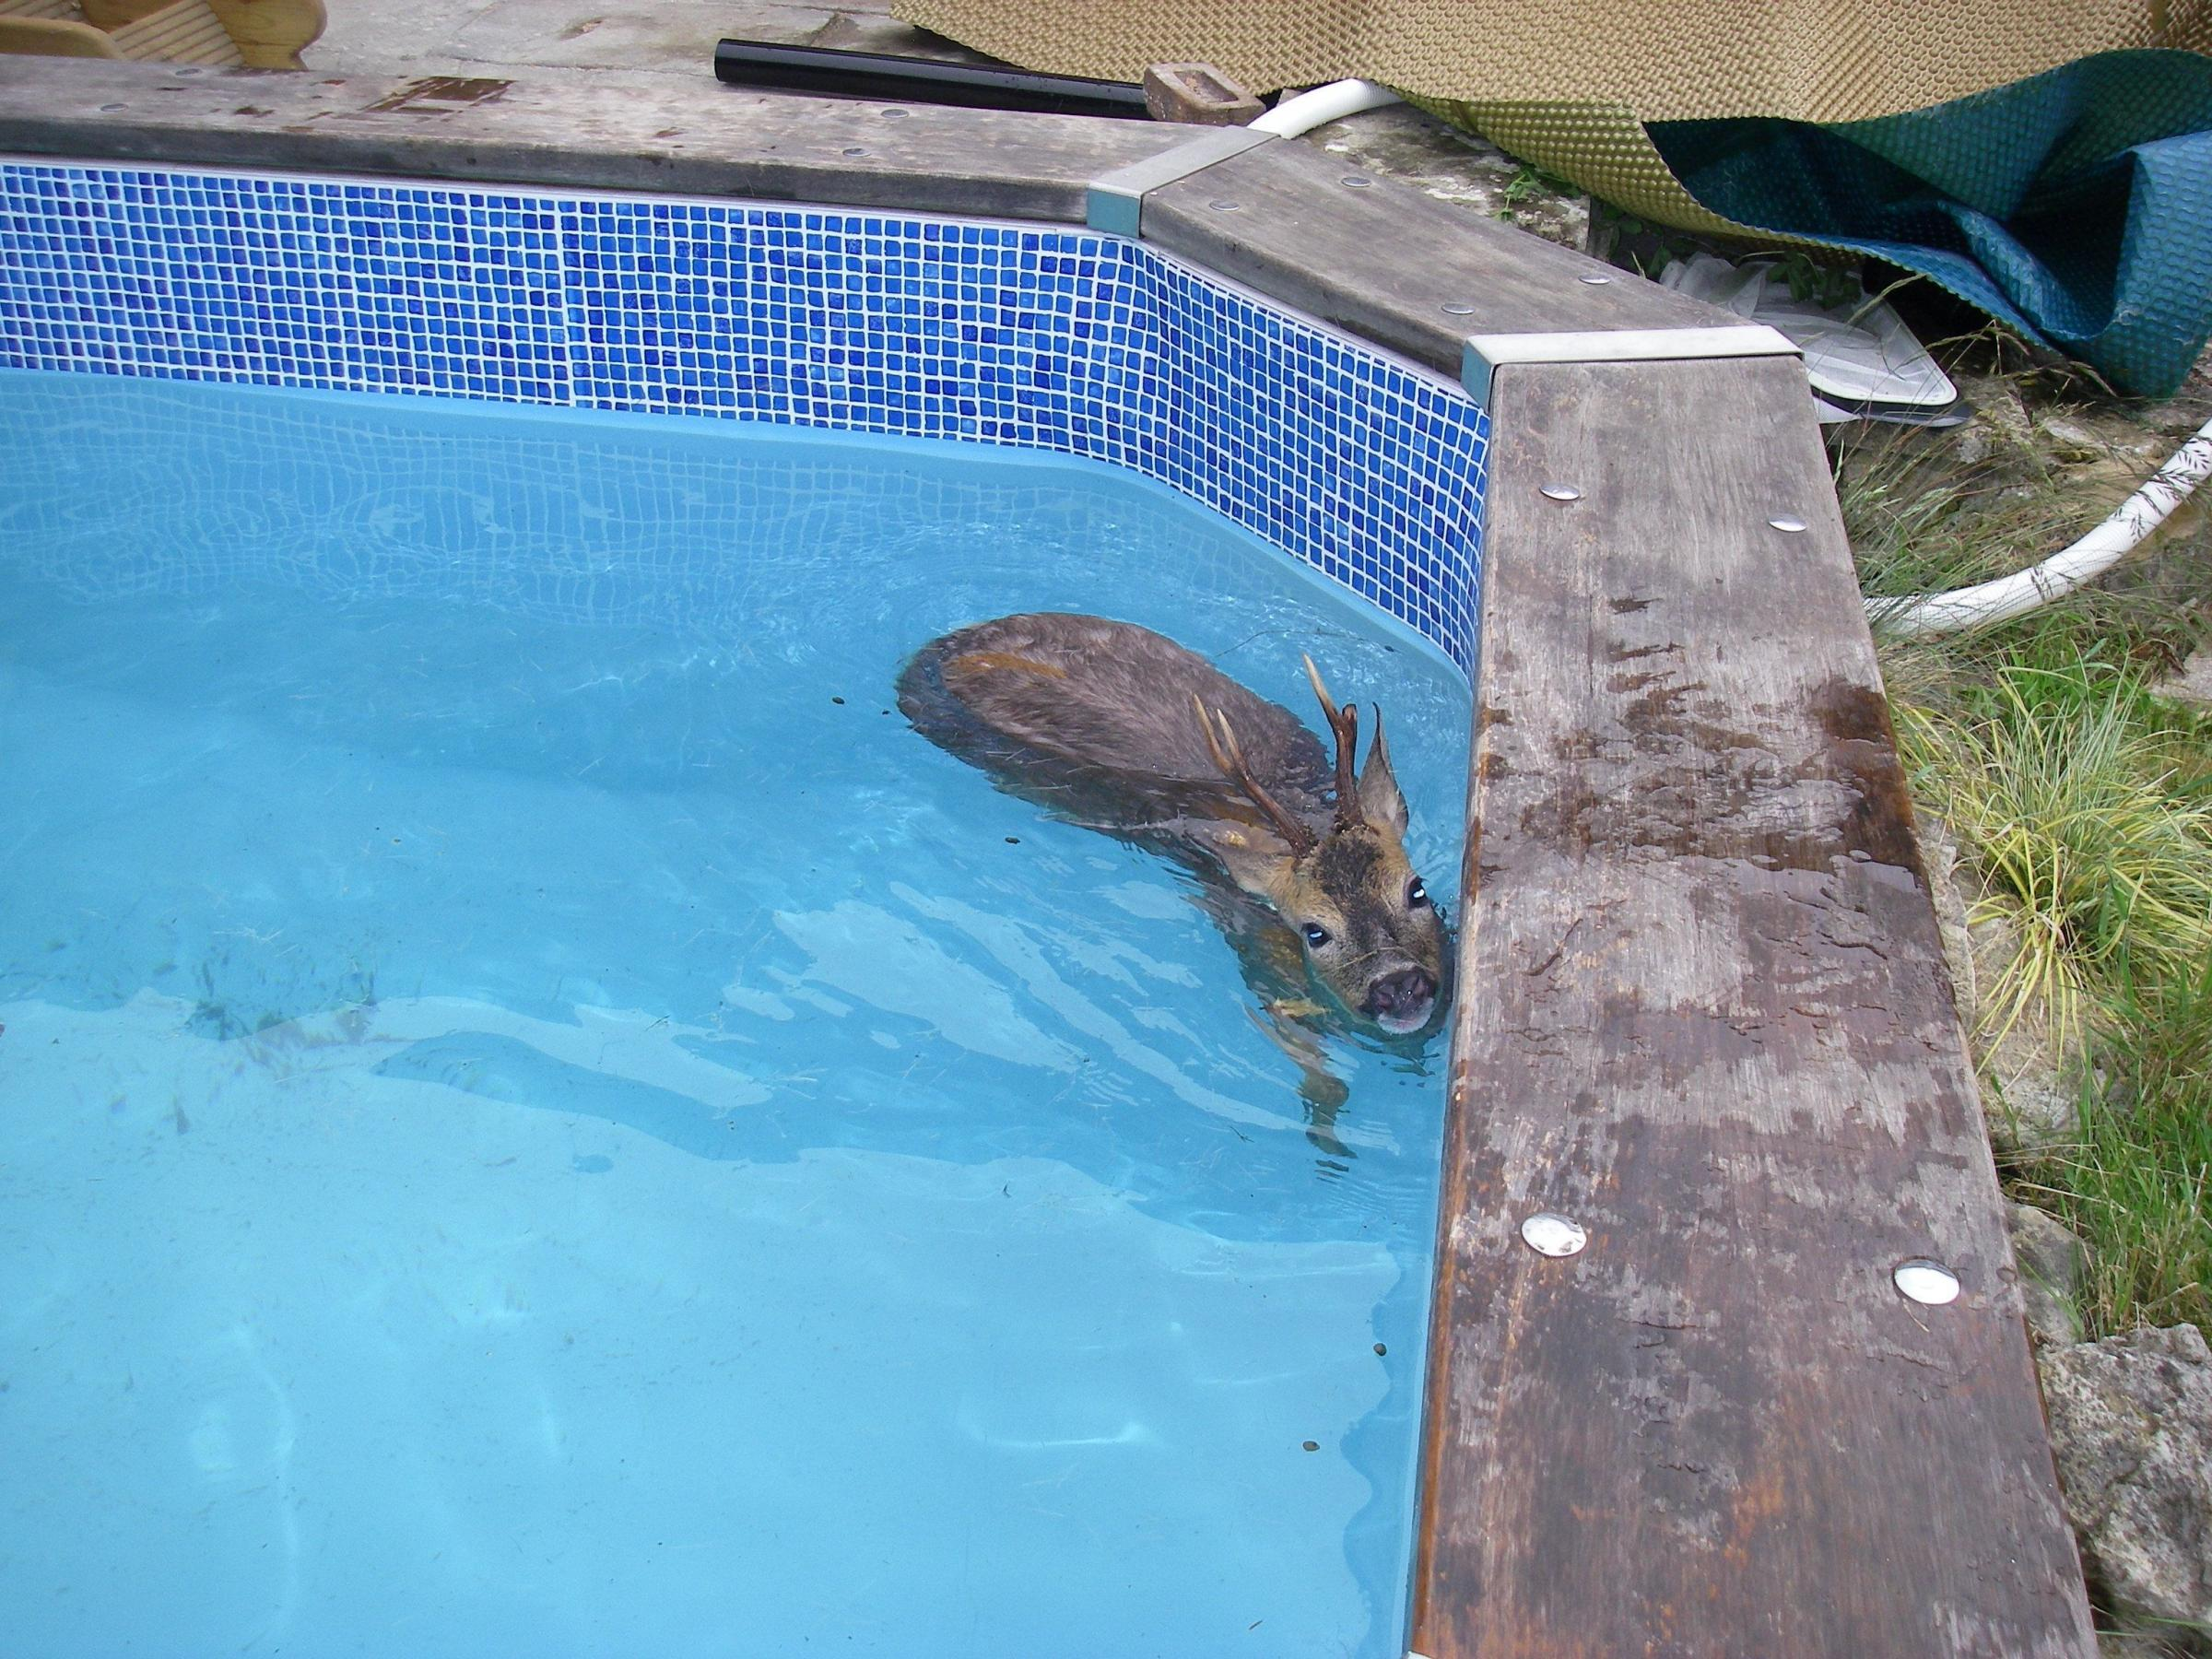 The deer stuck in the pool in Hedge End.